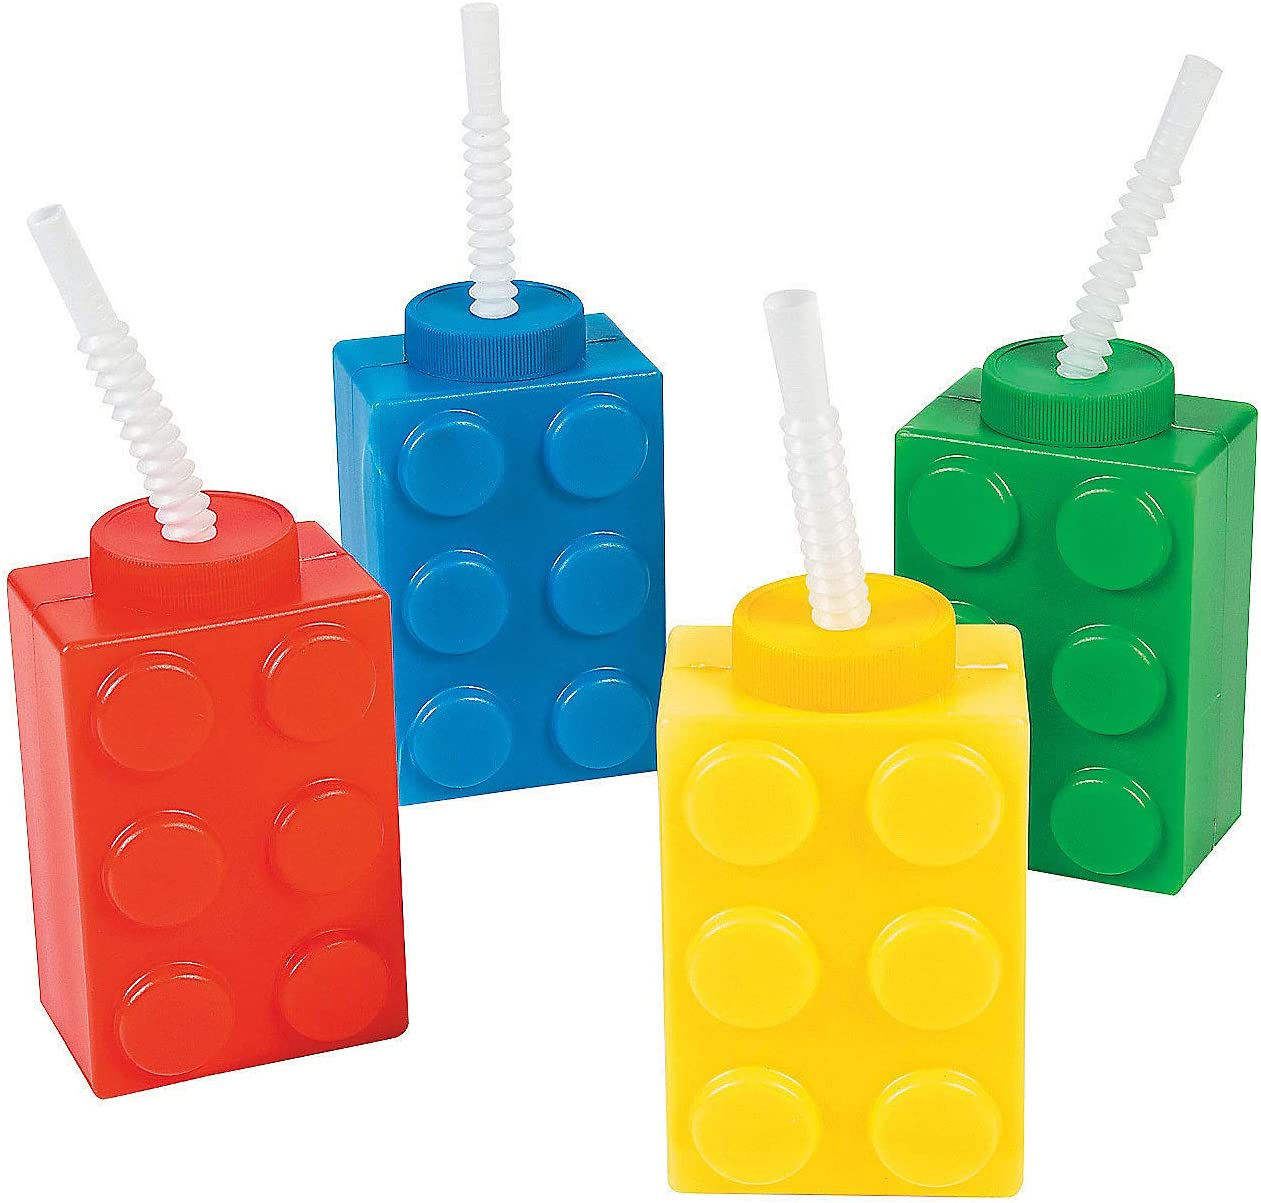 Brick Birthday Party Favors for Kids Supplies Decoration Accessories by 4Es Novelty Pack of 4 Building Blocks Cups /& Lollipop Sucker